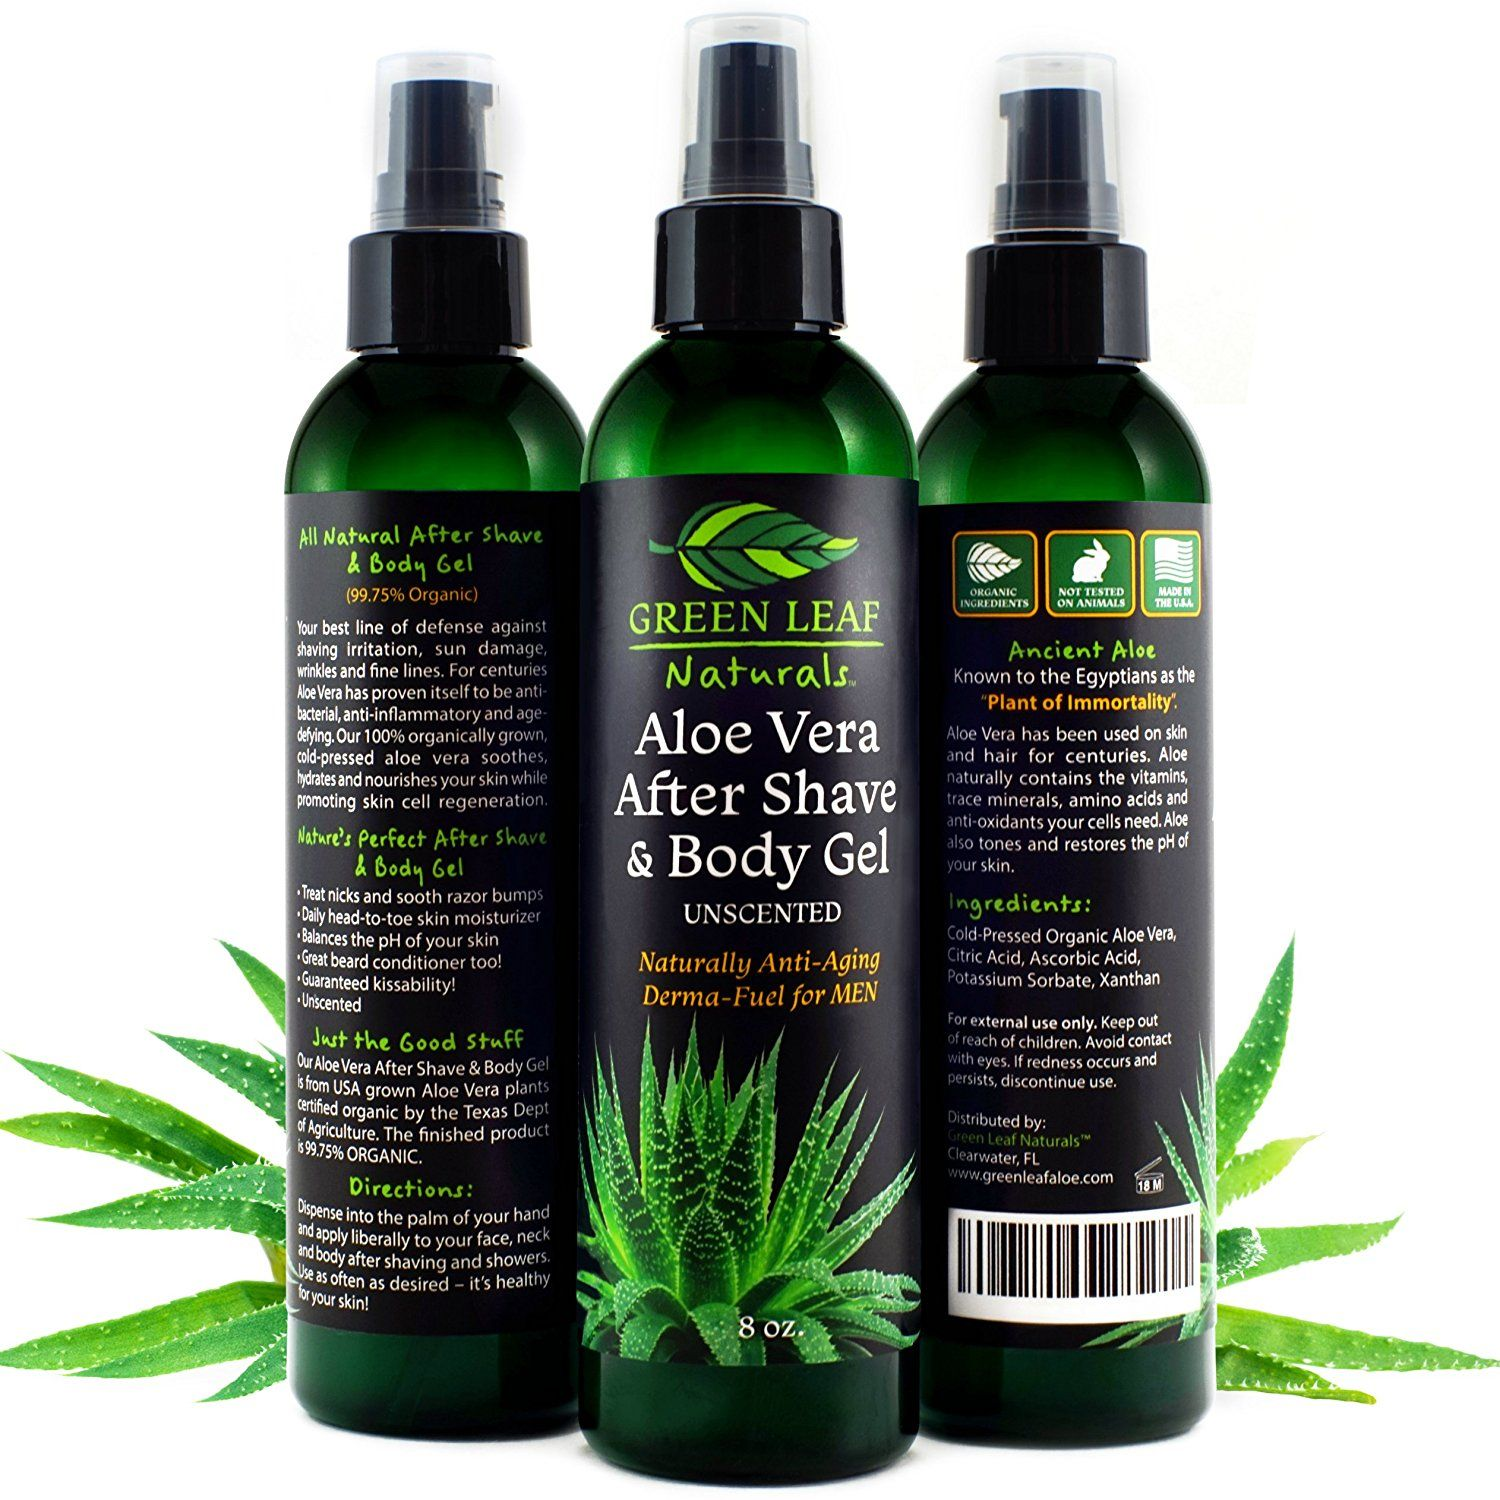 Aloe Vera After Shave and Body Gel Unscented Naturally